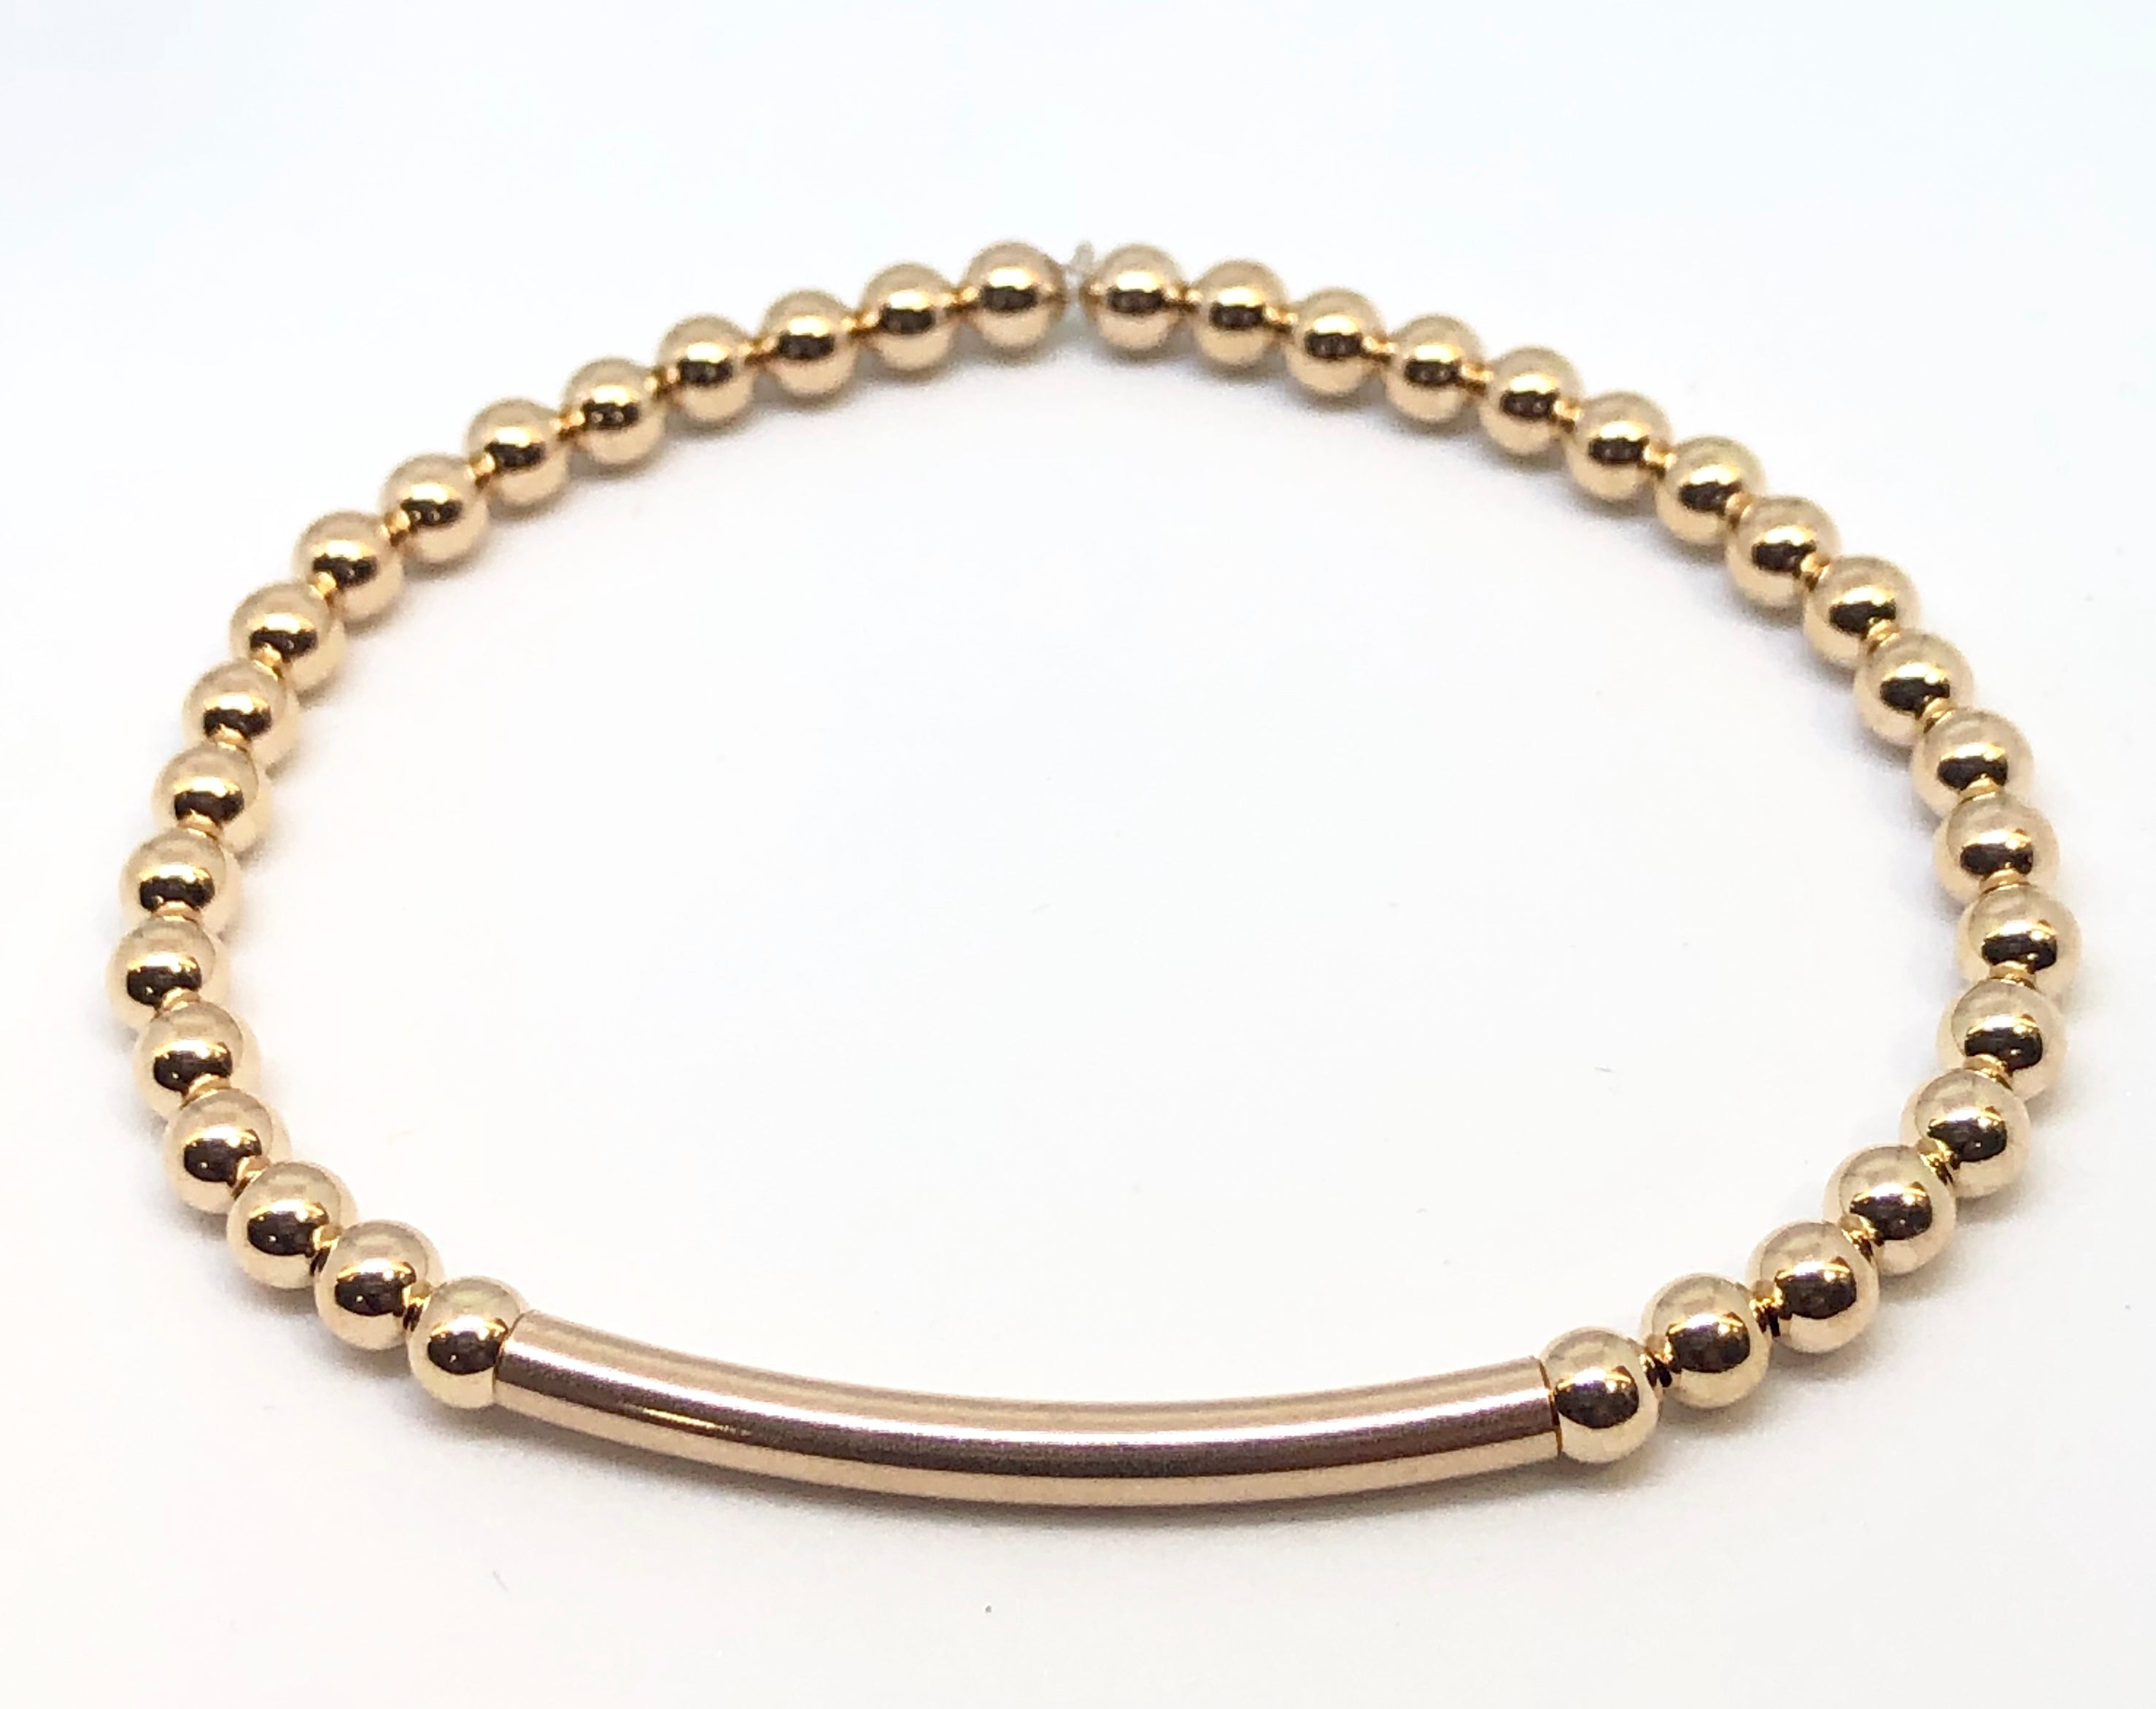 4mm Rose Gold Filled Bracelet with 4mm Rose Gold Bar